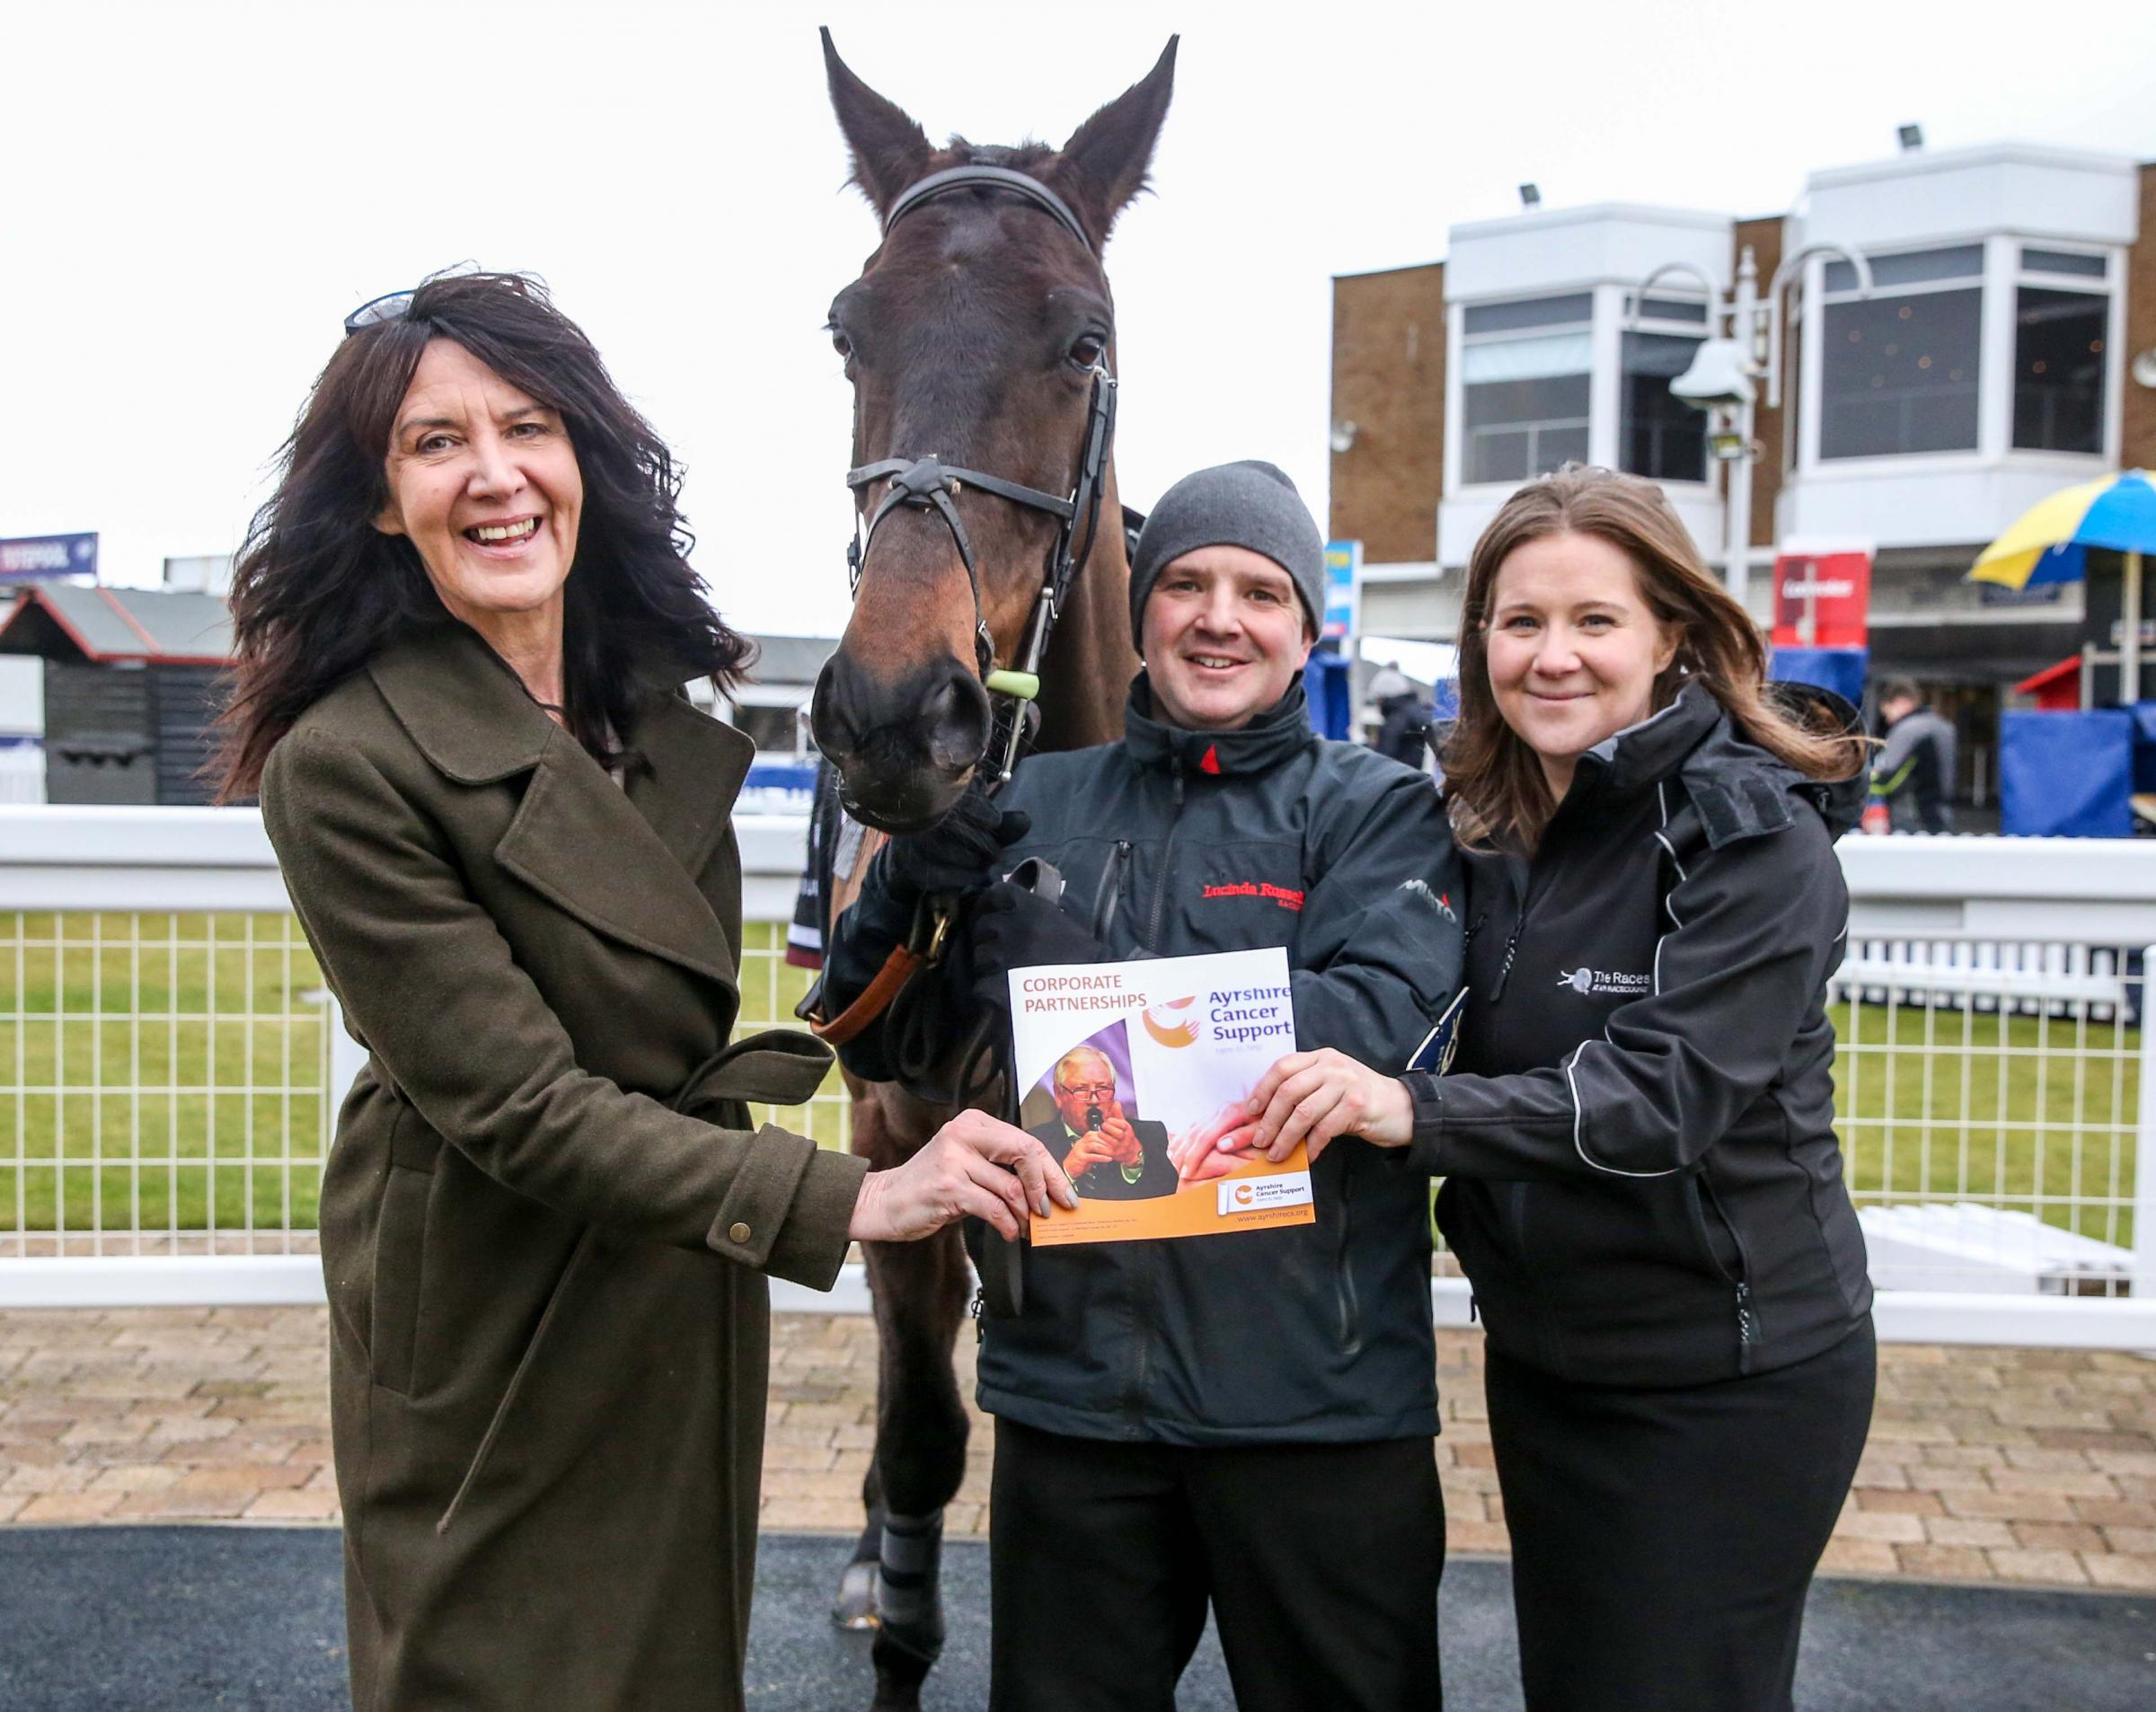 Ayrshire Cancer Support is Ayr Racecourse's chosen charity